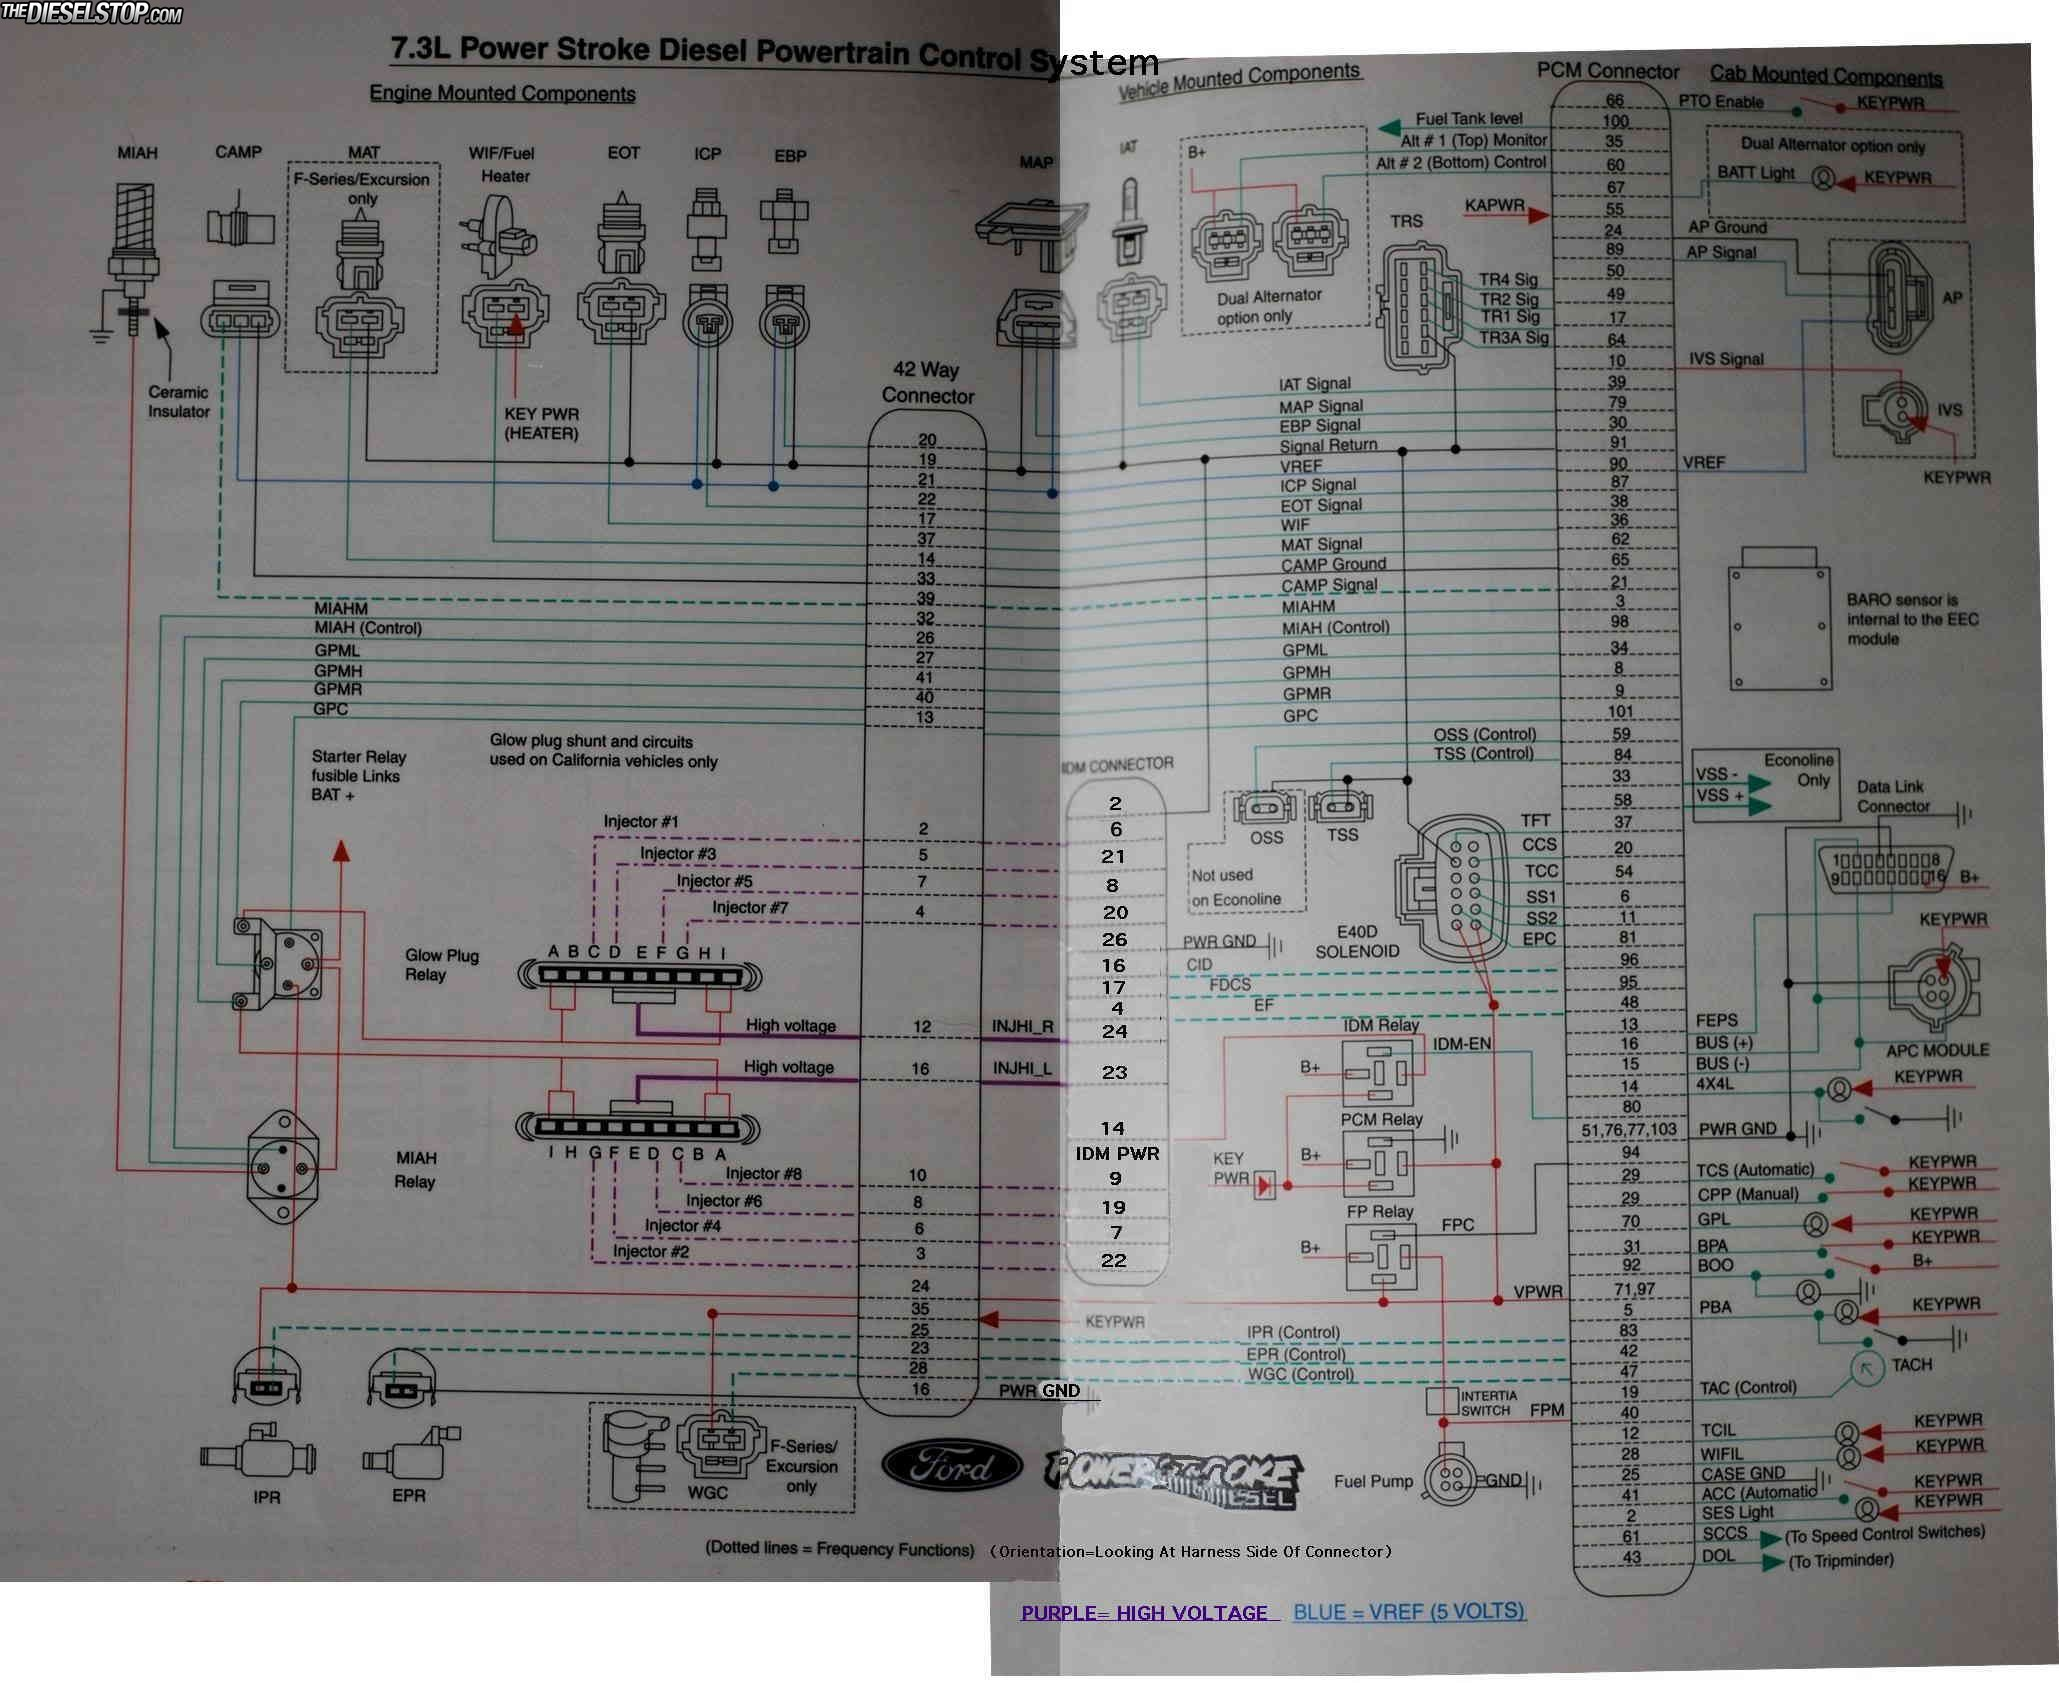 it s very detailed and shows how every wire for each ponent routes to the PCM